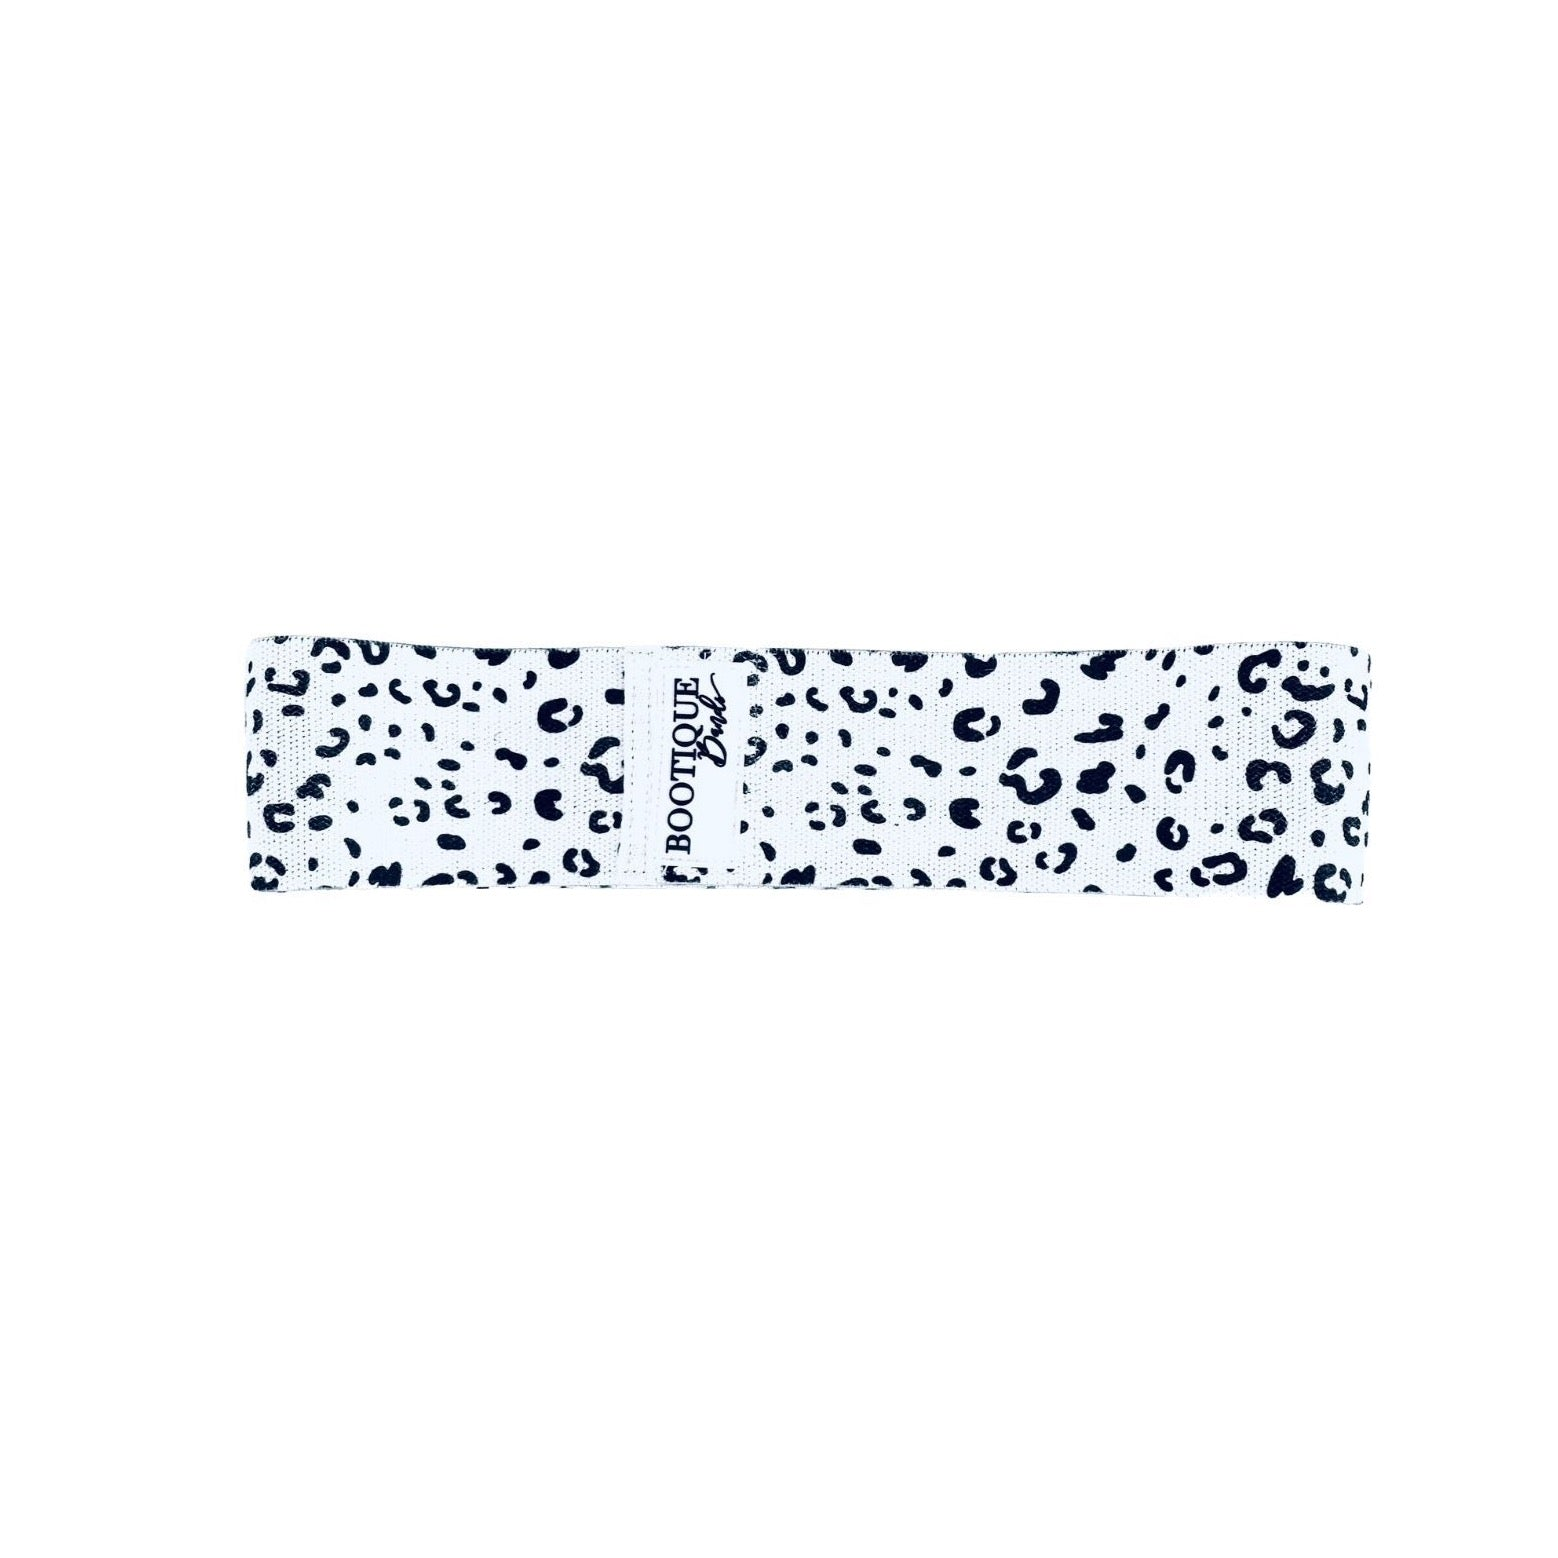 Snow Leopard Glute Band - Light to Medium Resistance